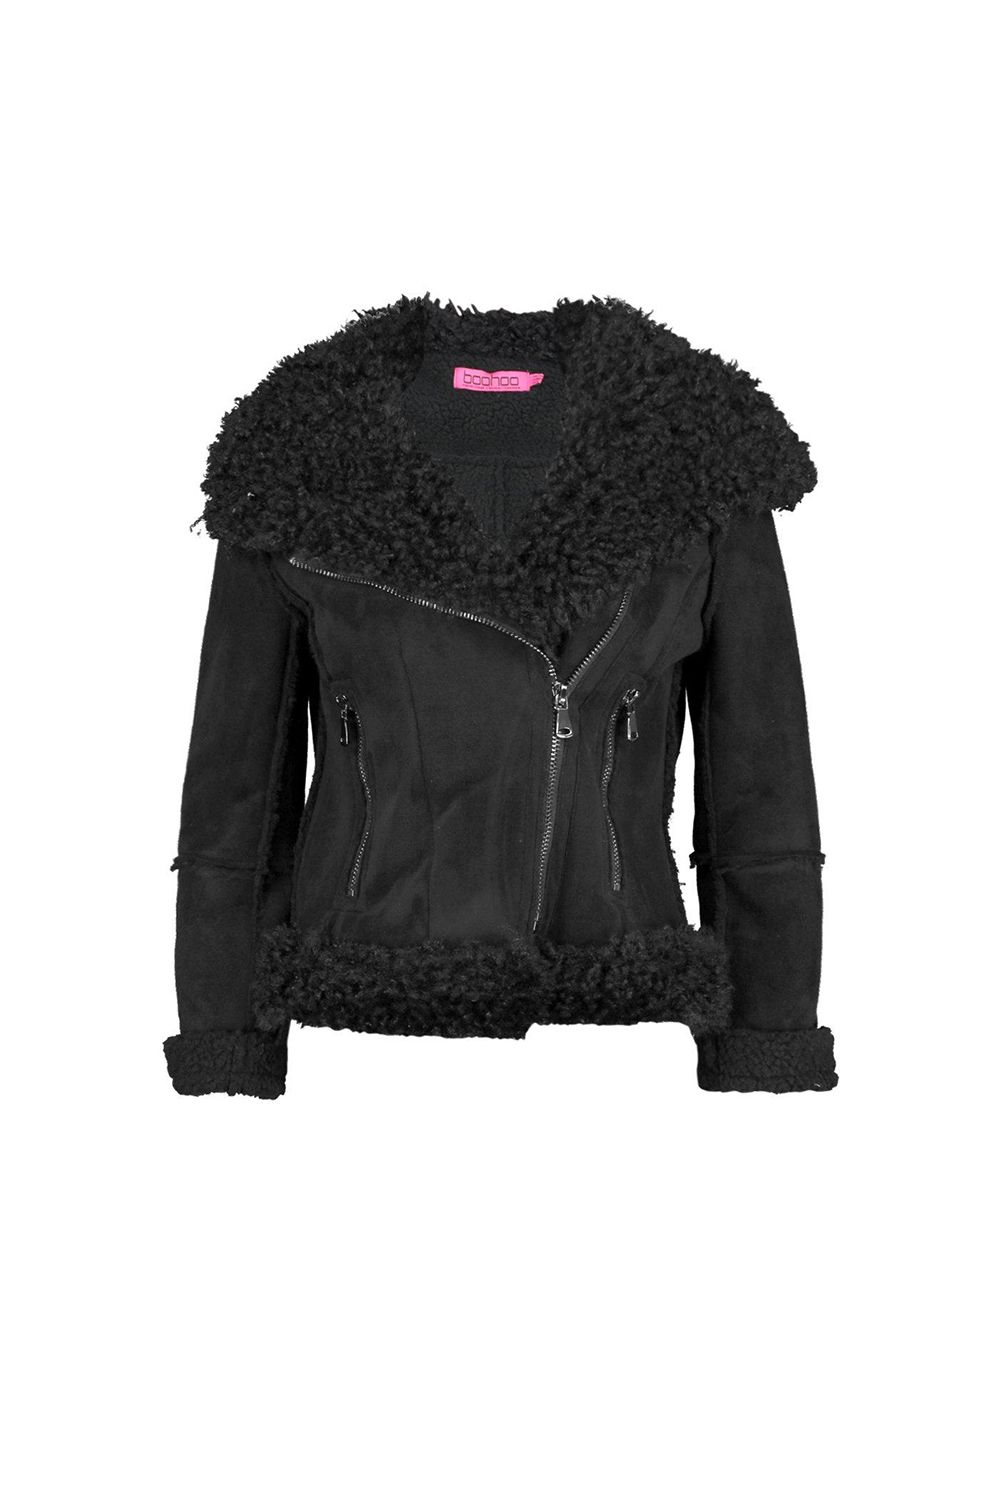 """<p>You know what they say about big collars: more fluff.</p><p>$105, <a href=""""http://us.boohoo.com/lola-bonded-biker-with-mongolian-faux-fur/DZZ79723.html?color=105"""" target=""""_blank"""" data-tracking-id=""""recirc-text-link"""">boohoo.com</a>.</p>"""